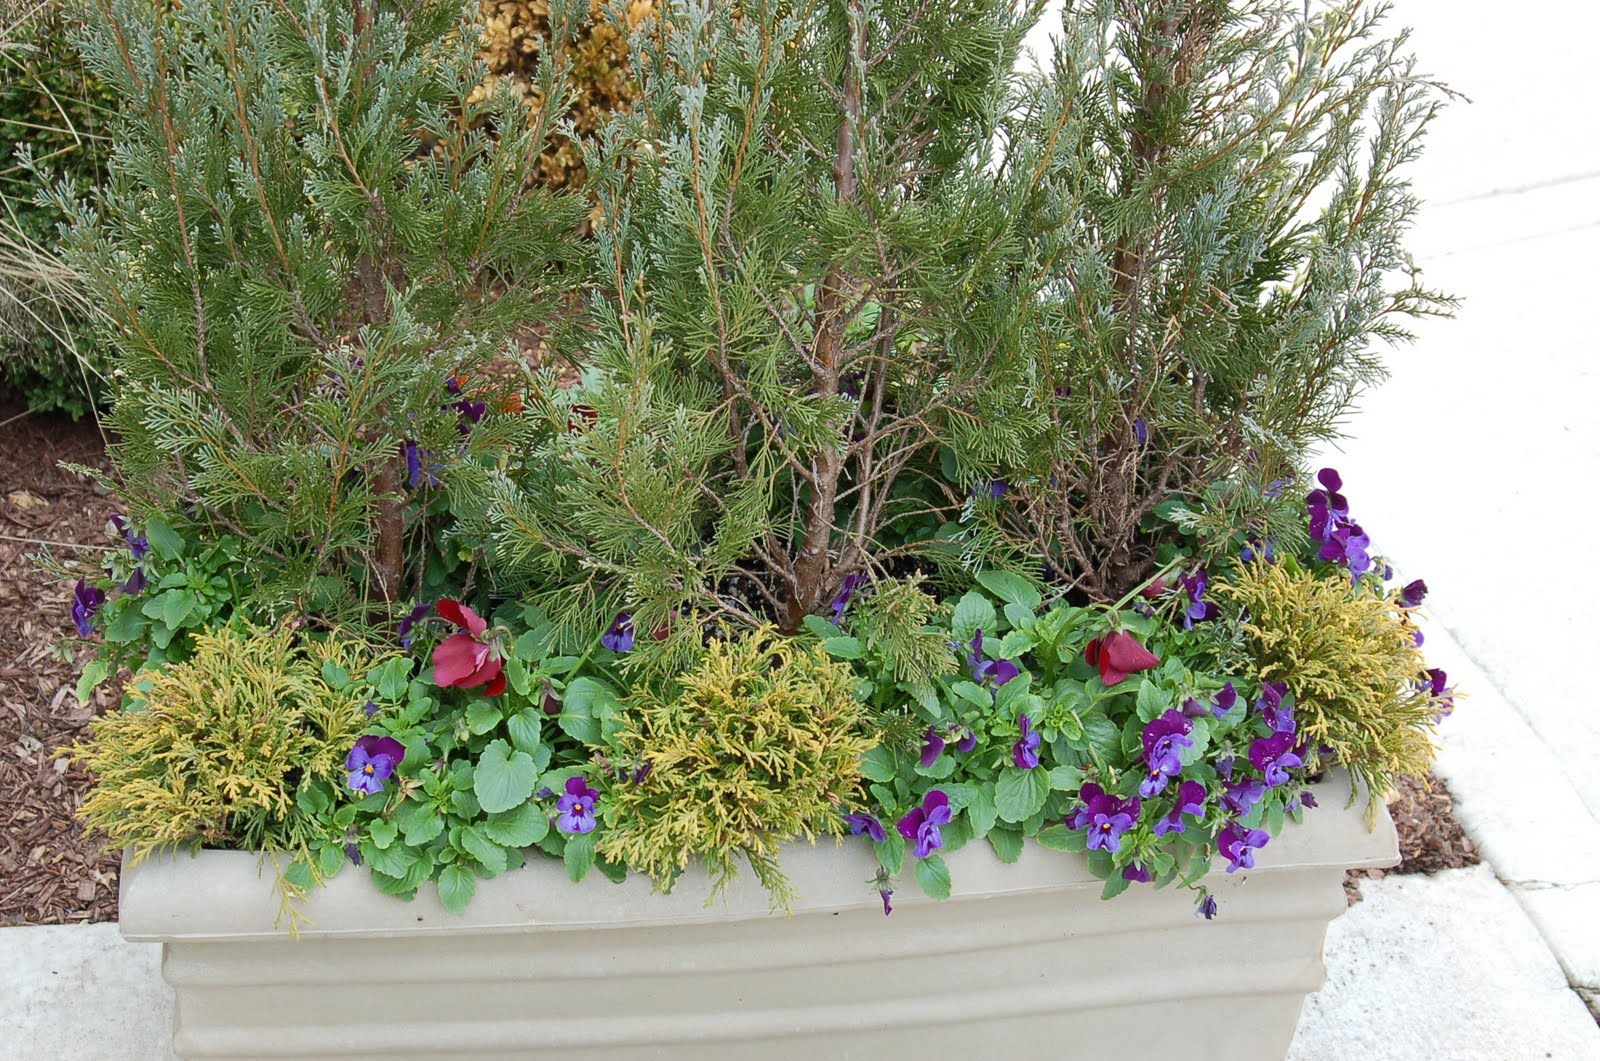 bwisegardening Fall Container Ideas